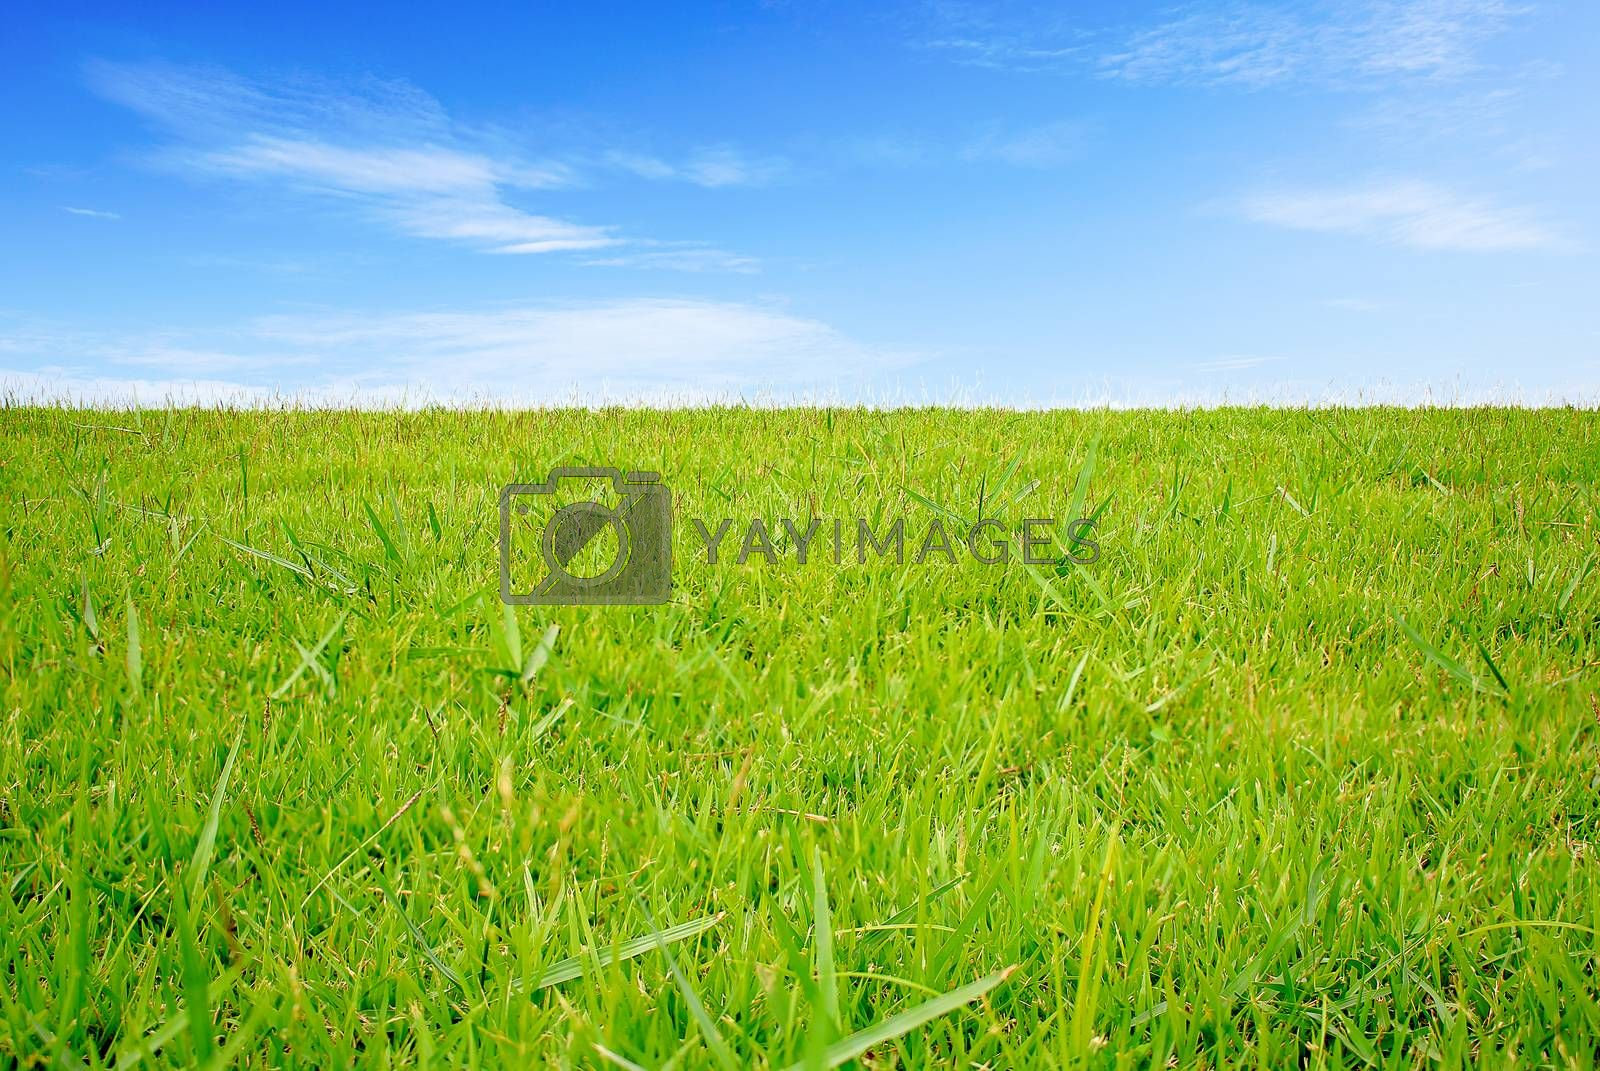 Green field under blue clouds sky, Beauty nature background.